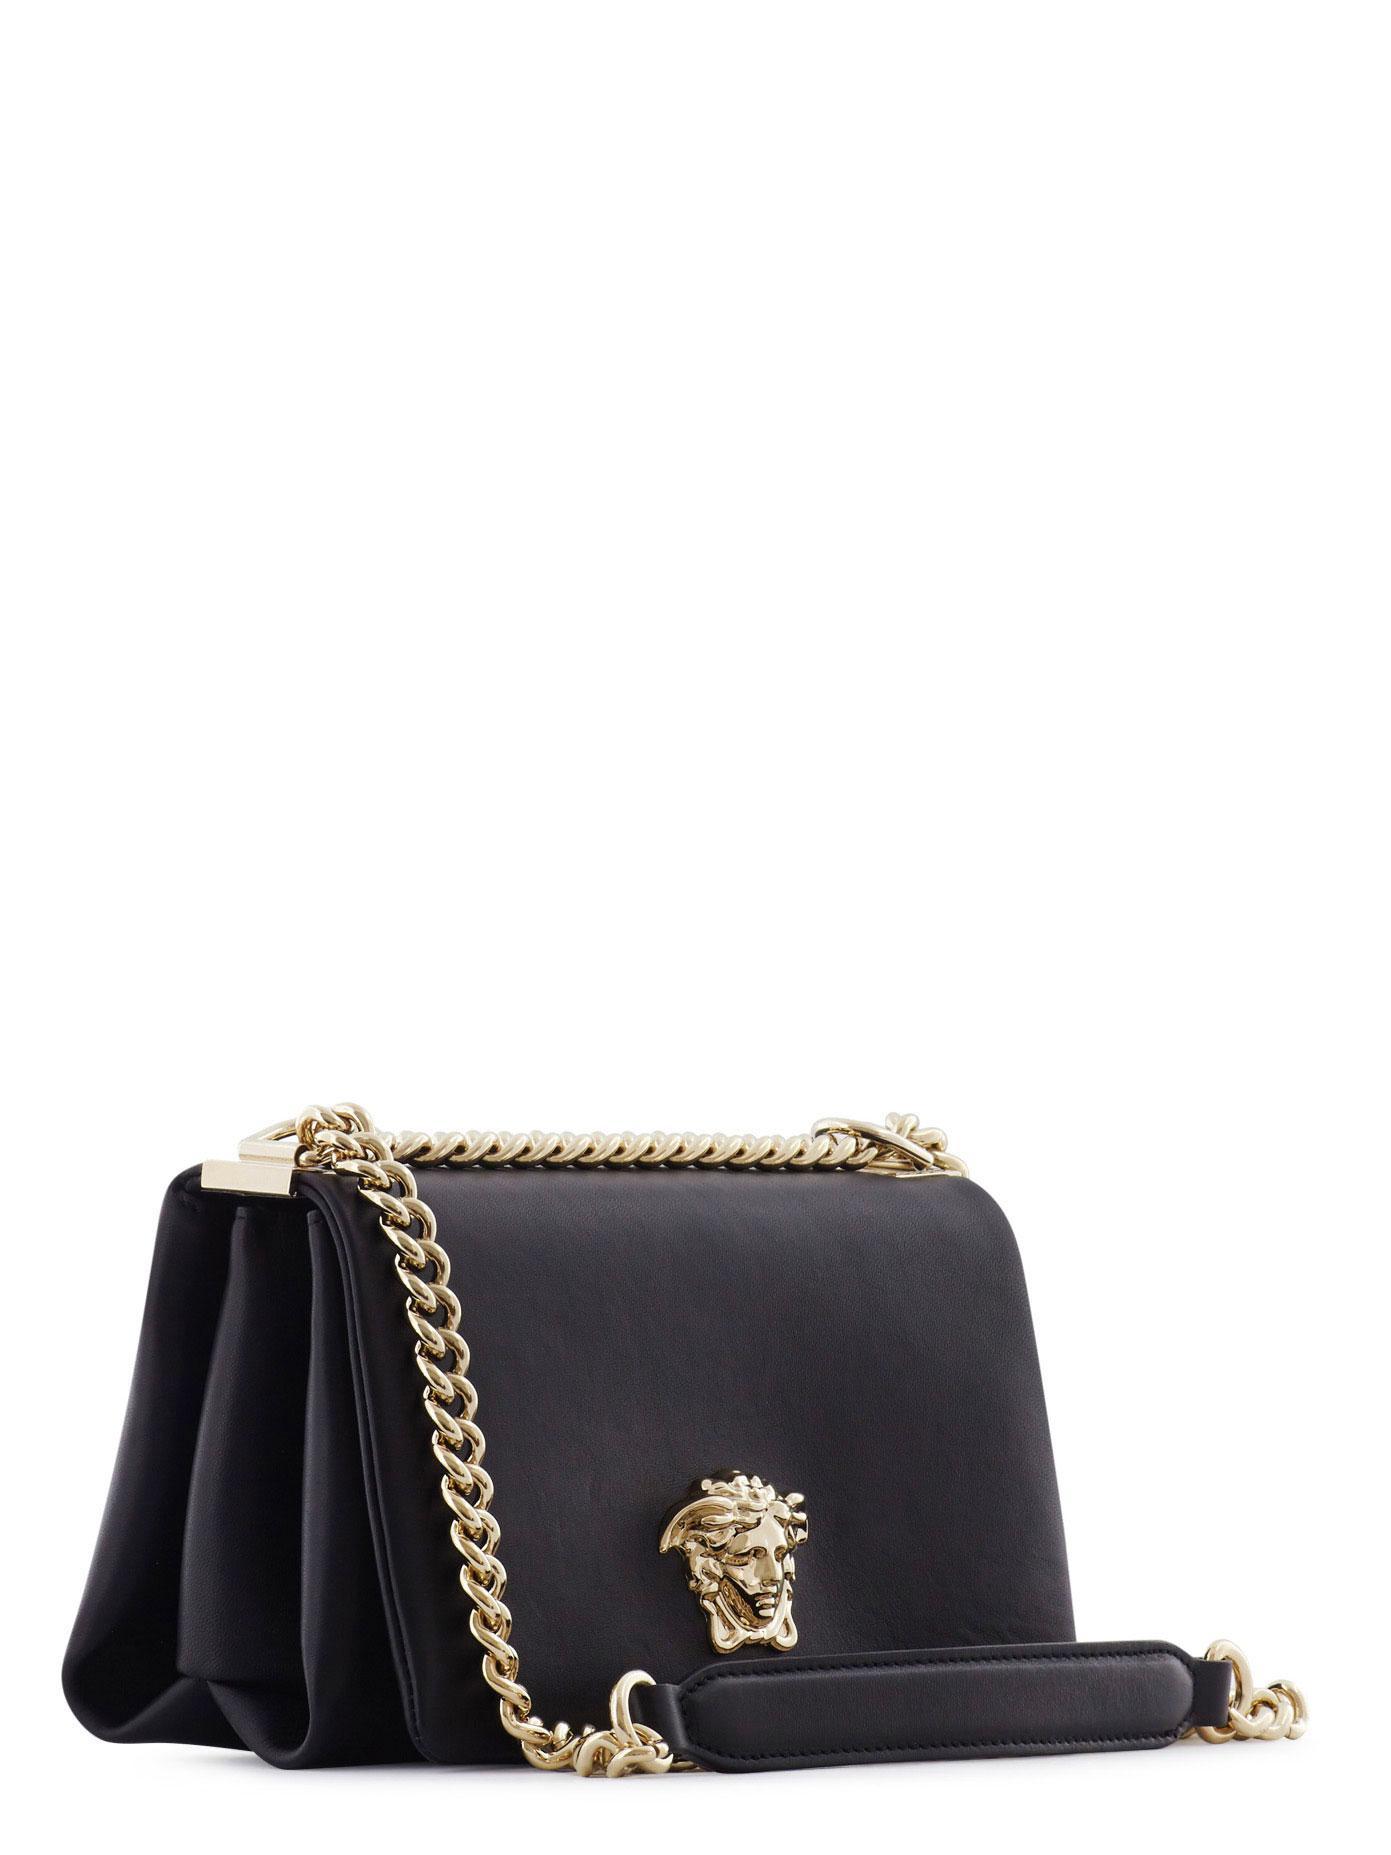 12e2206b57f2 Lyst - Versace Palazzo Sultan Leather Shoulder Bag in Black